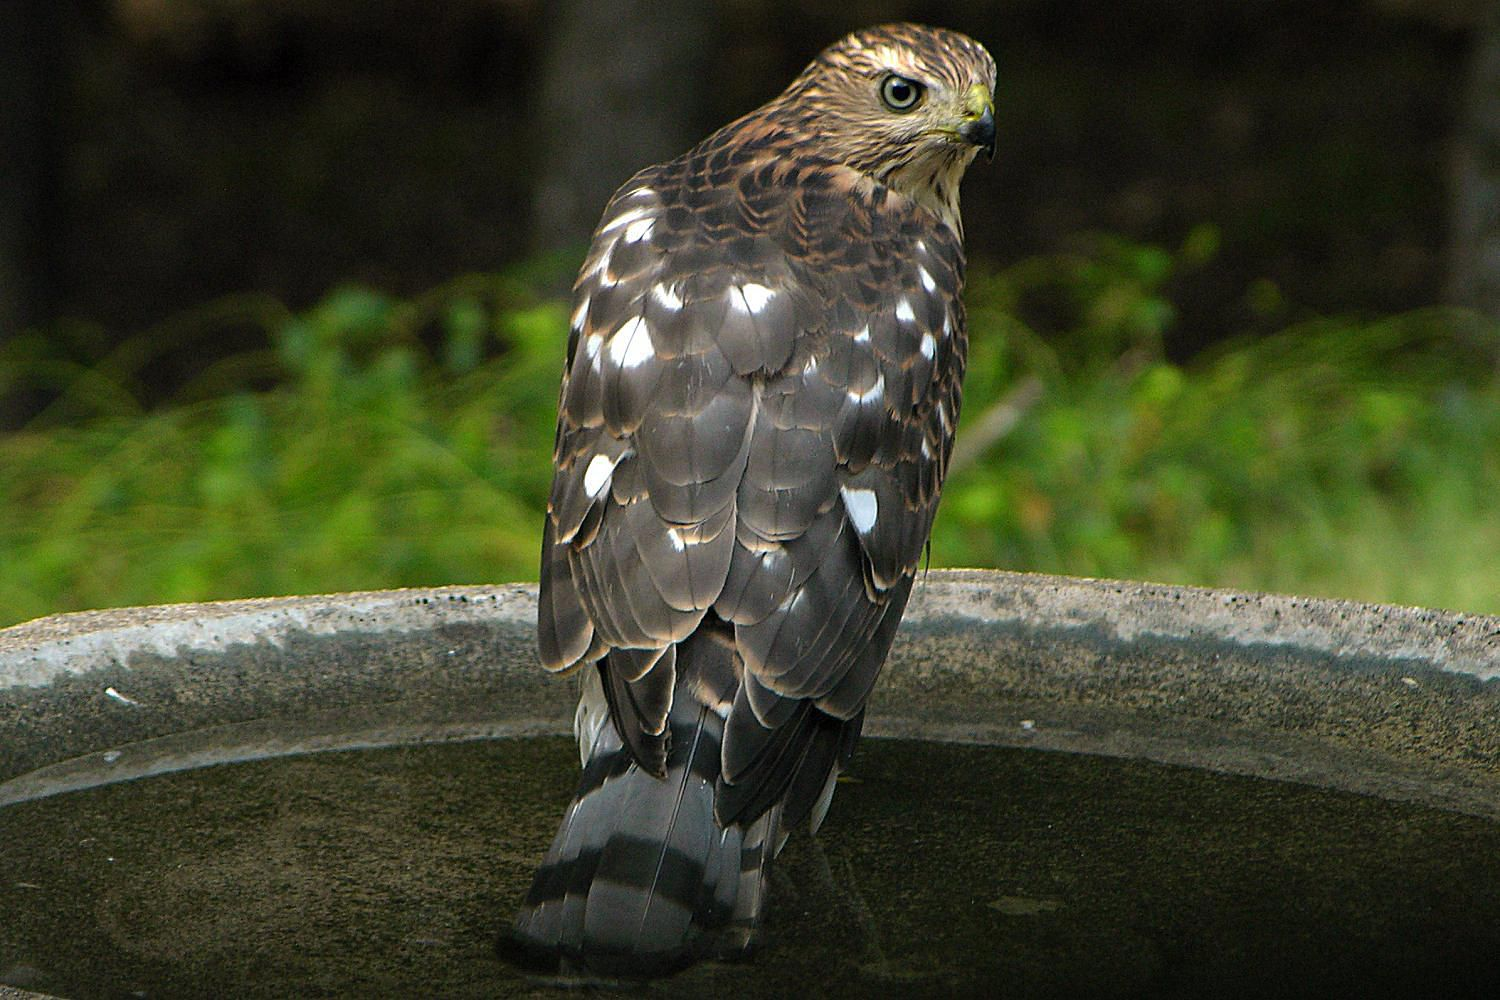 how to attract backyard hawks